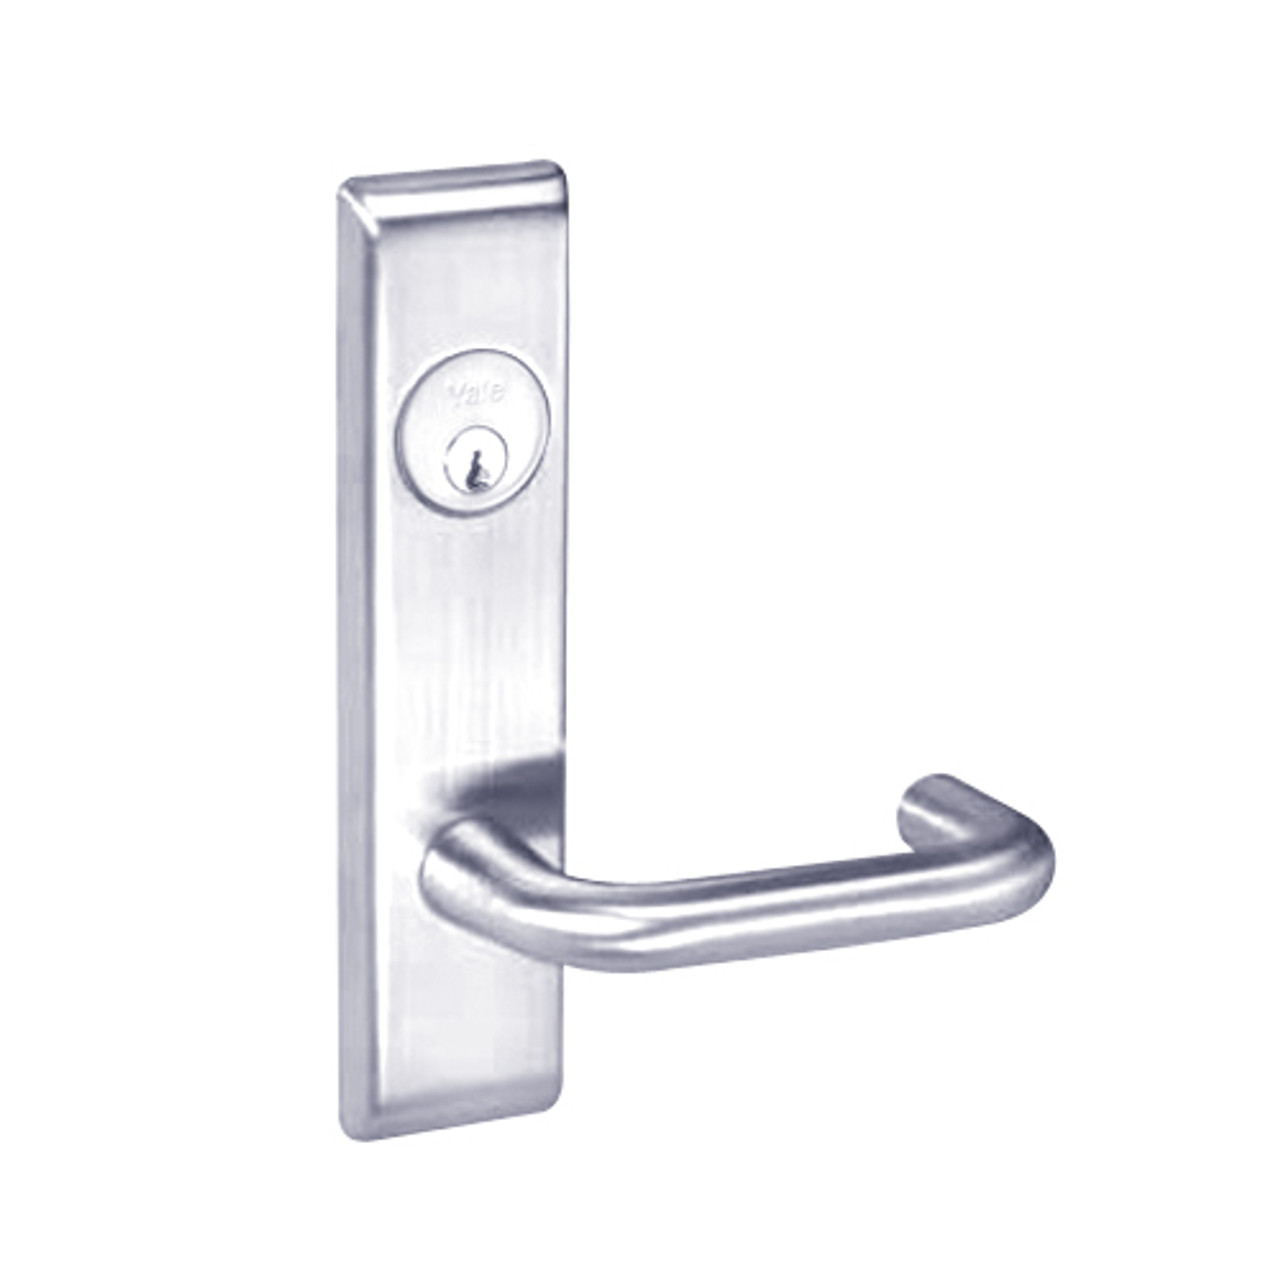 hight resolution of crcn8809fl 625 yale 8800fl series single cylinder mortise classroom w thumbturn locks with carmel lever in bright chrome lock depot inc